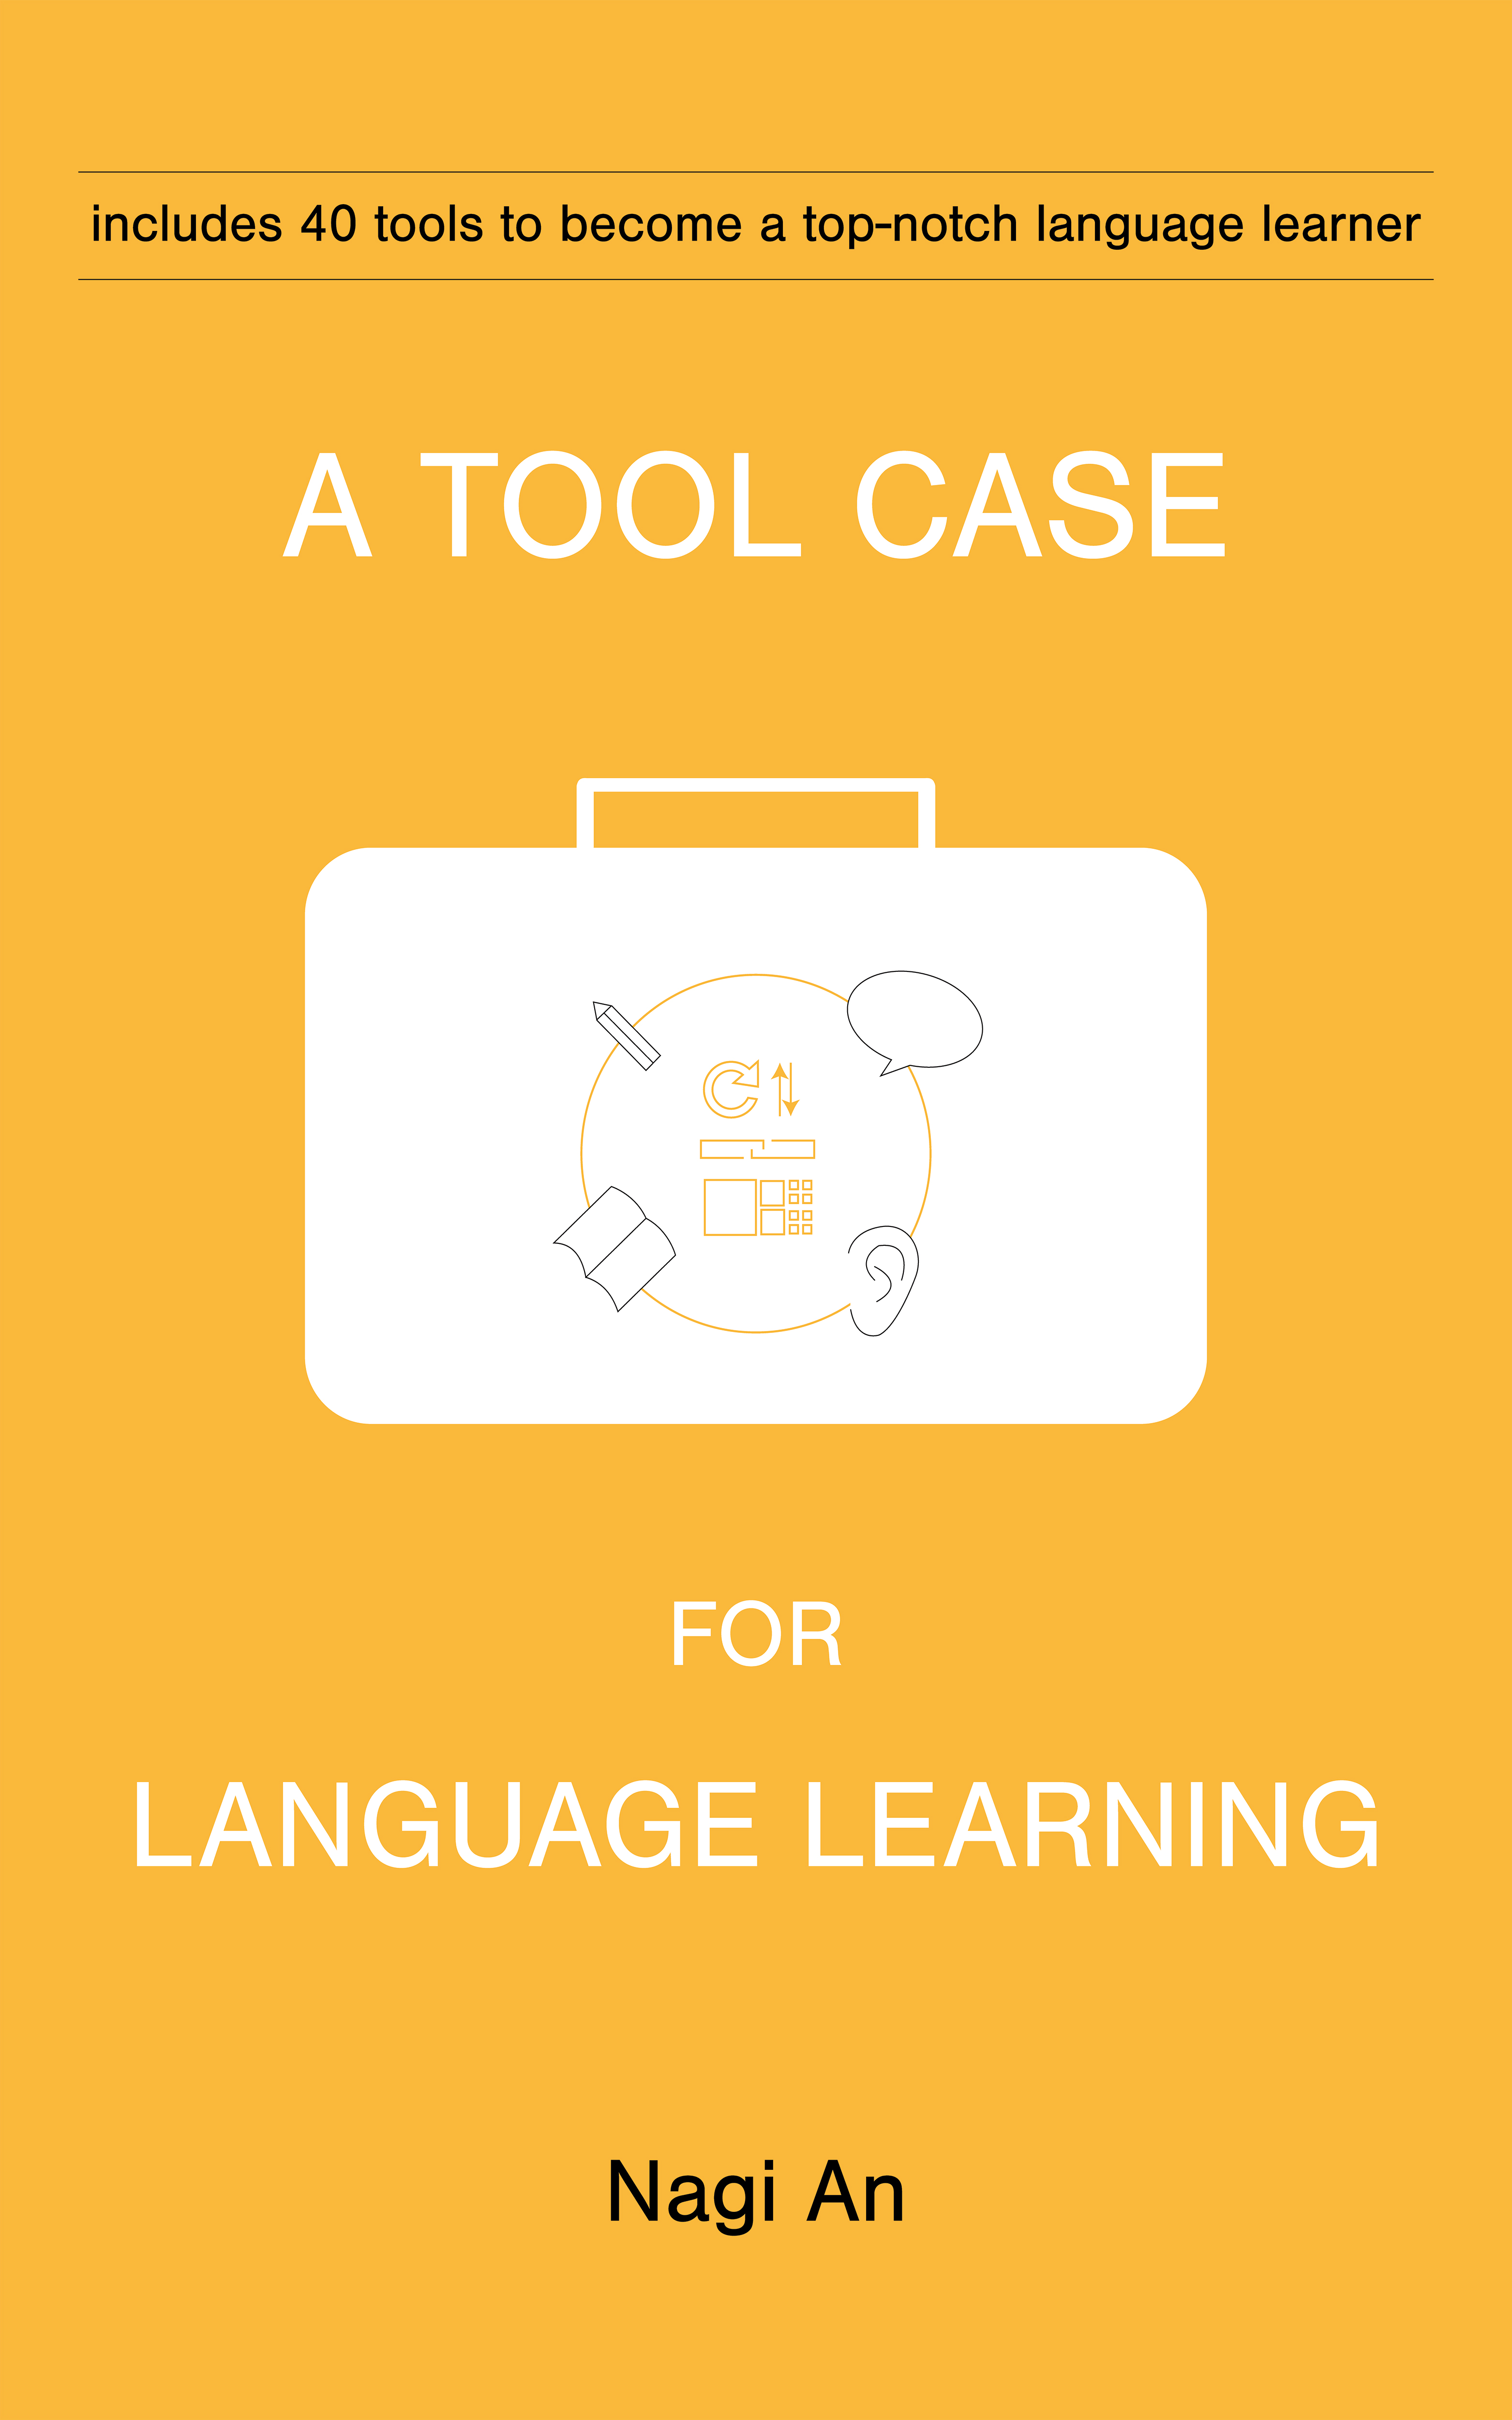 A Tool Case For Language Learning: 40 tools to become a top-notch language learner